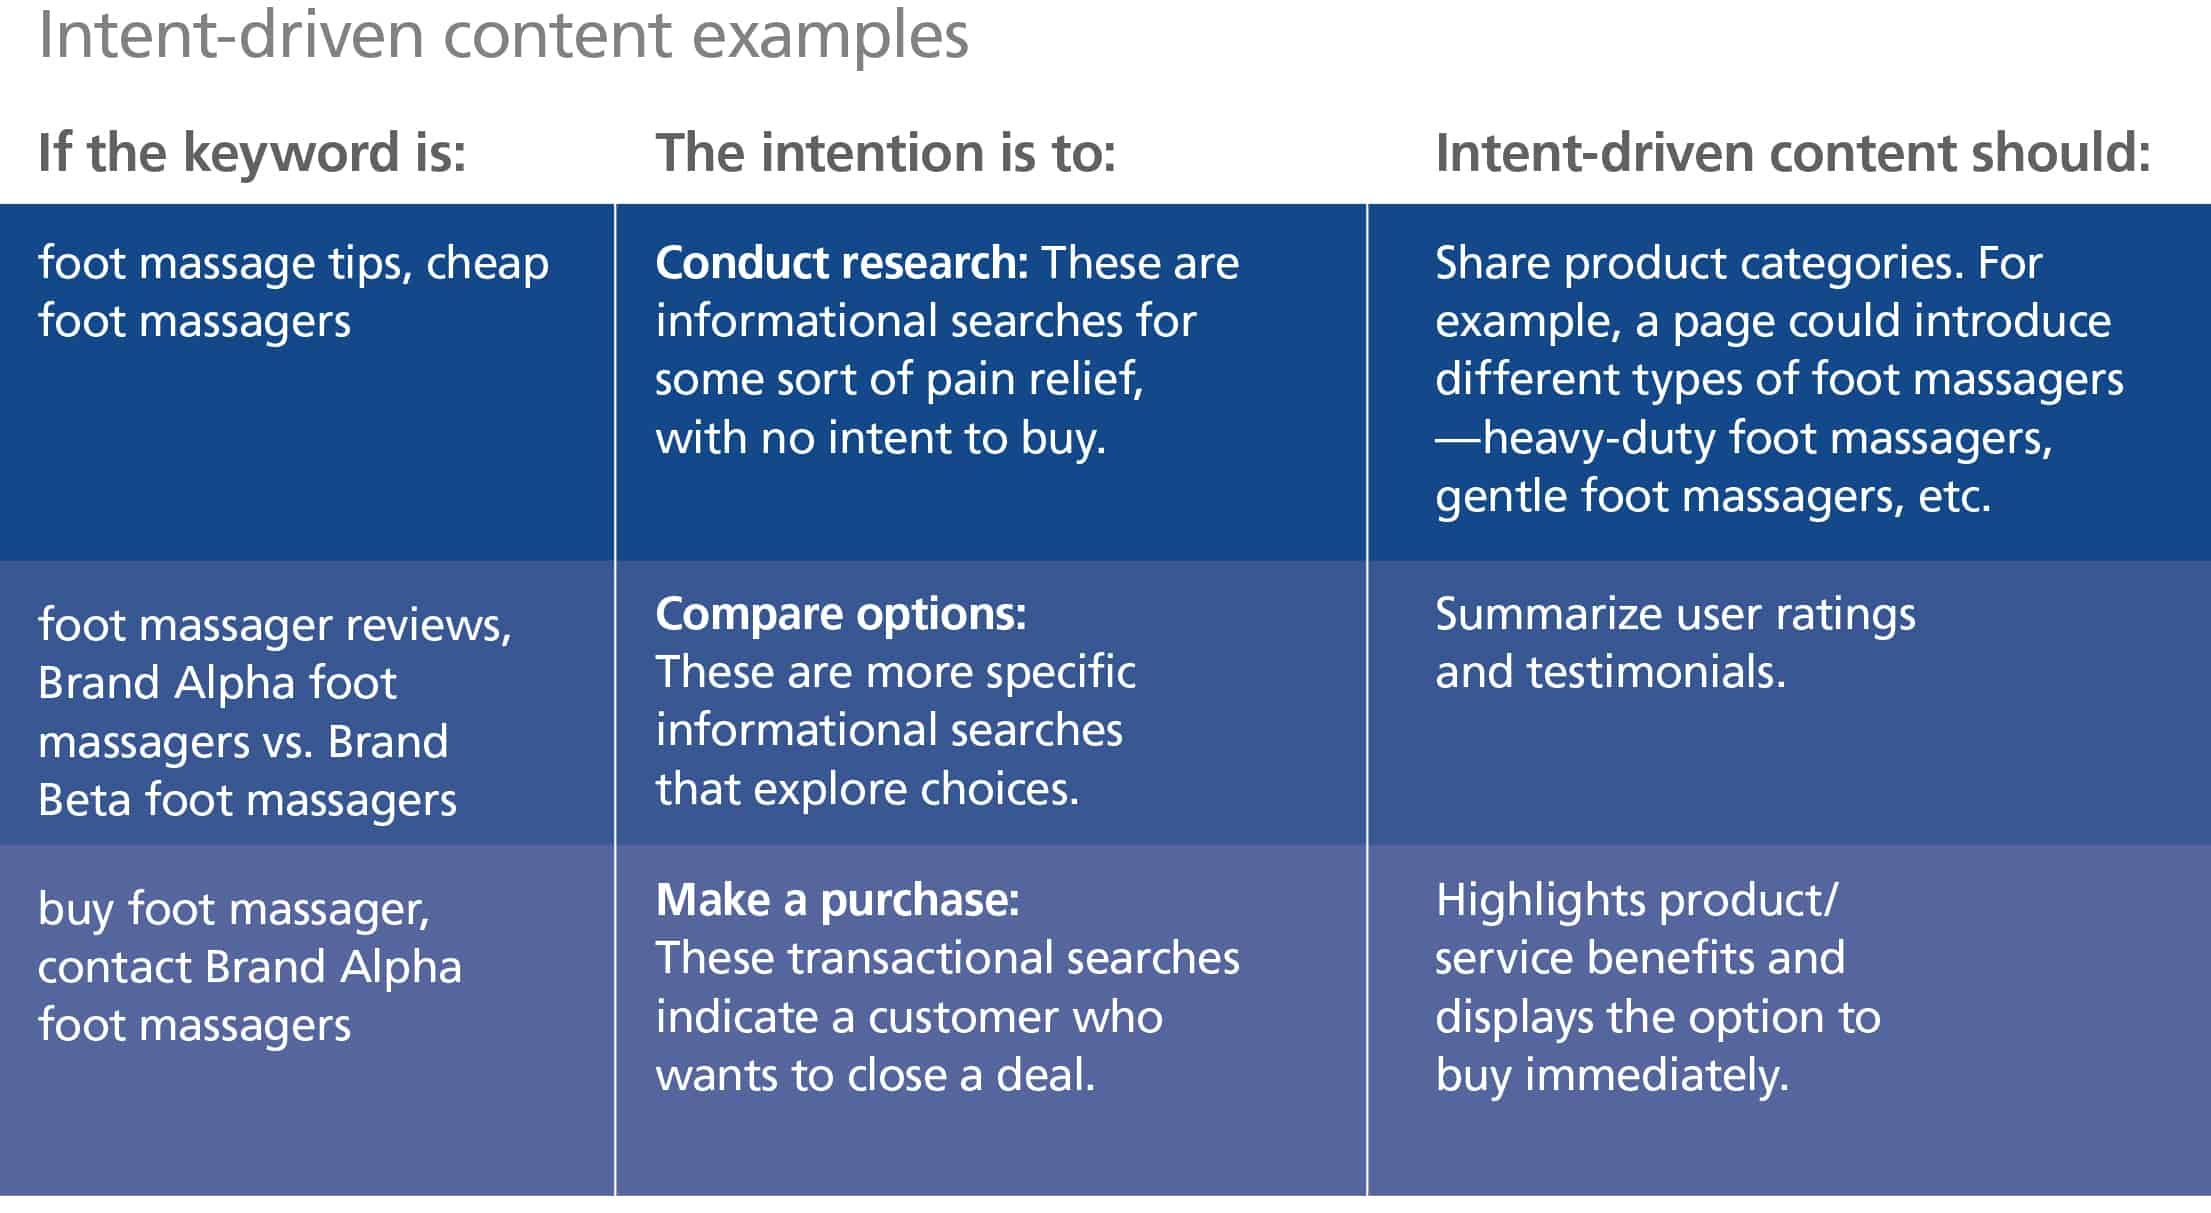 This chart shows intent-driven content examples described in this Blue Paper